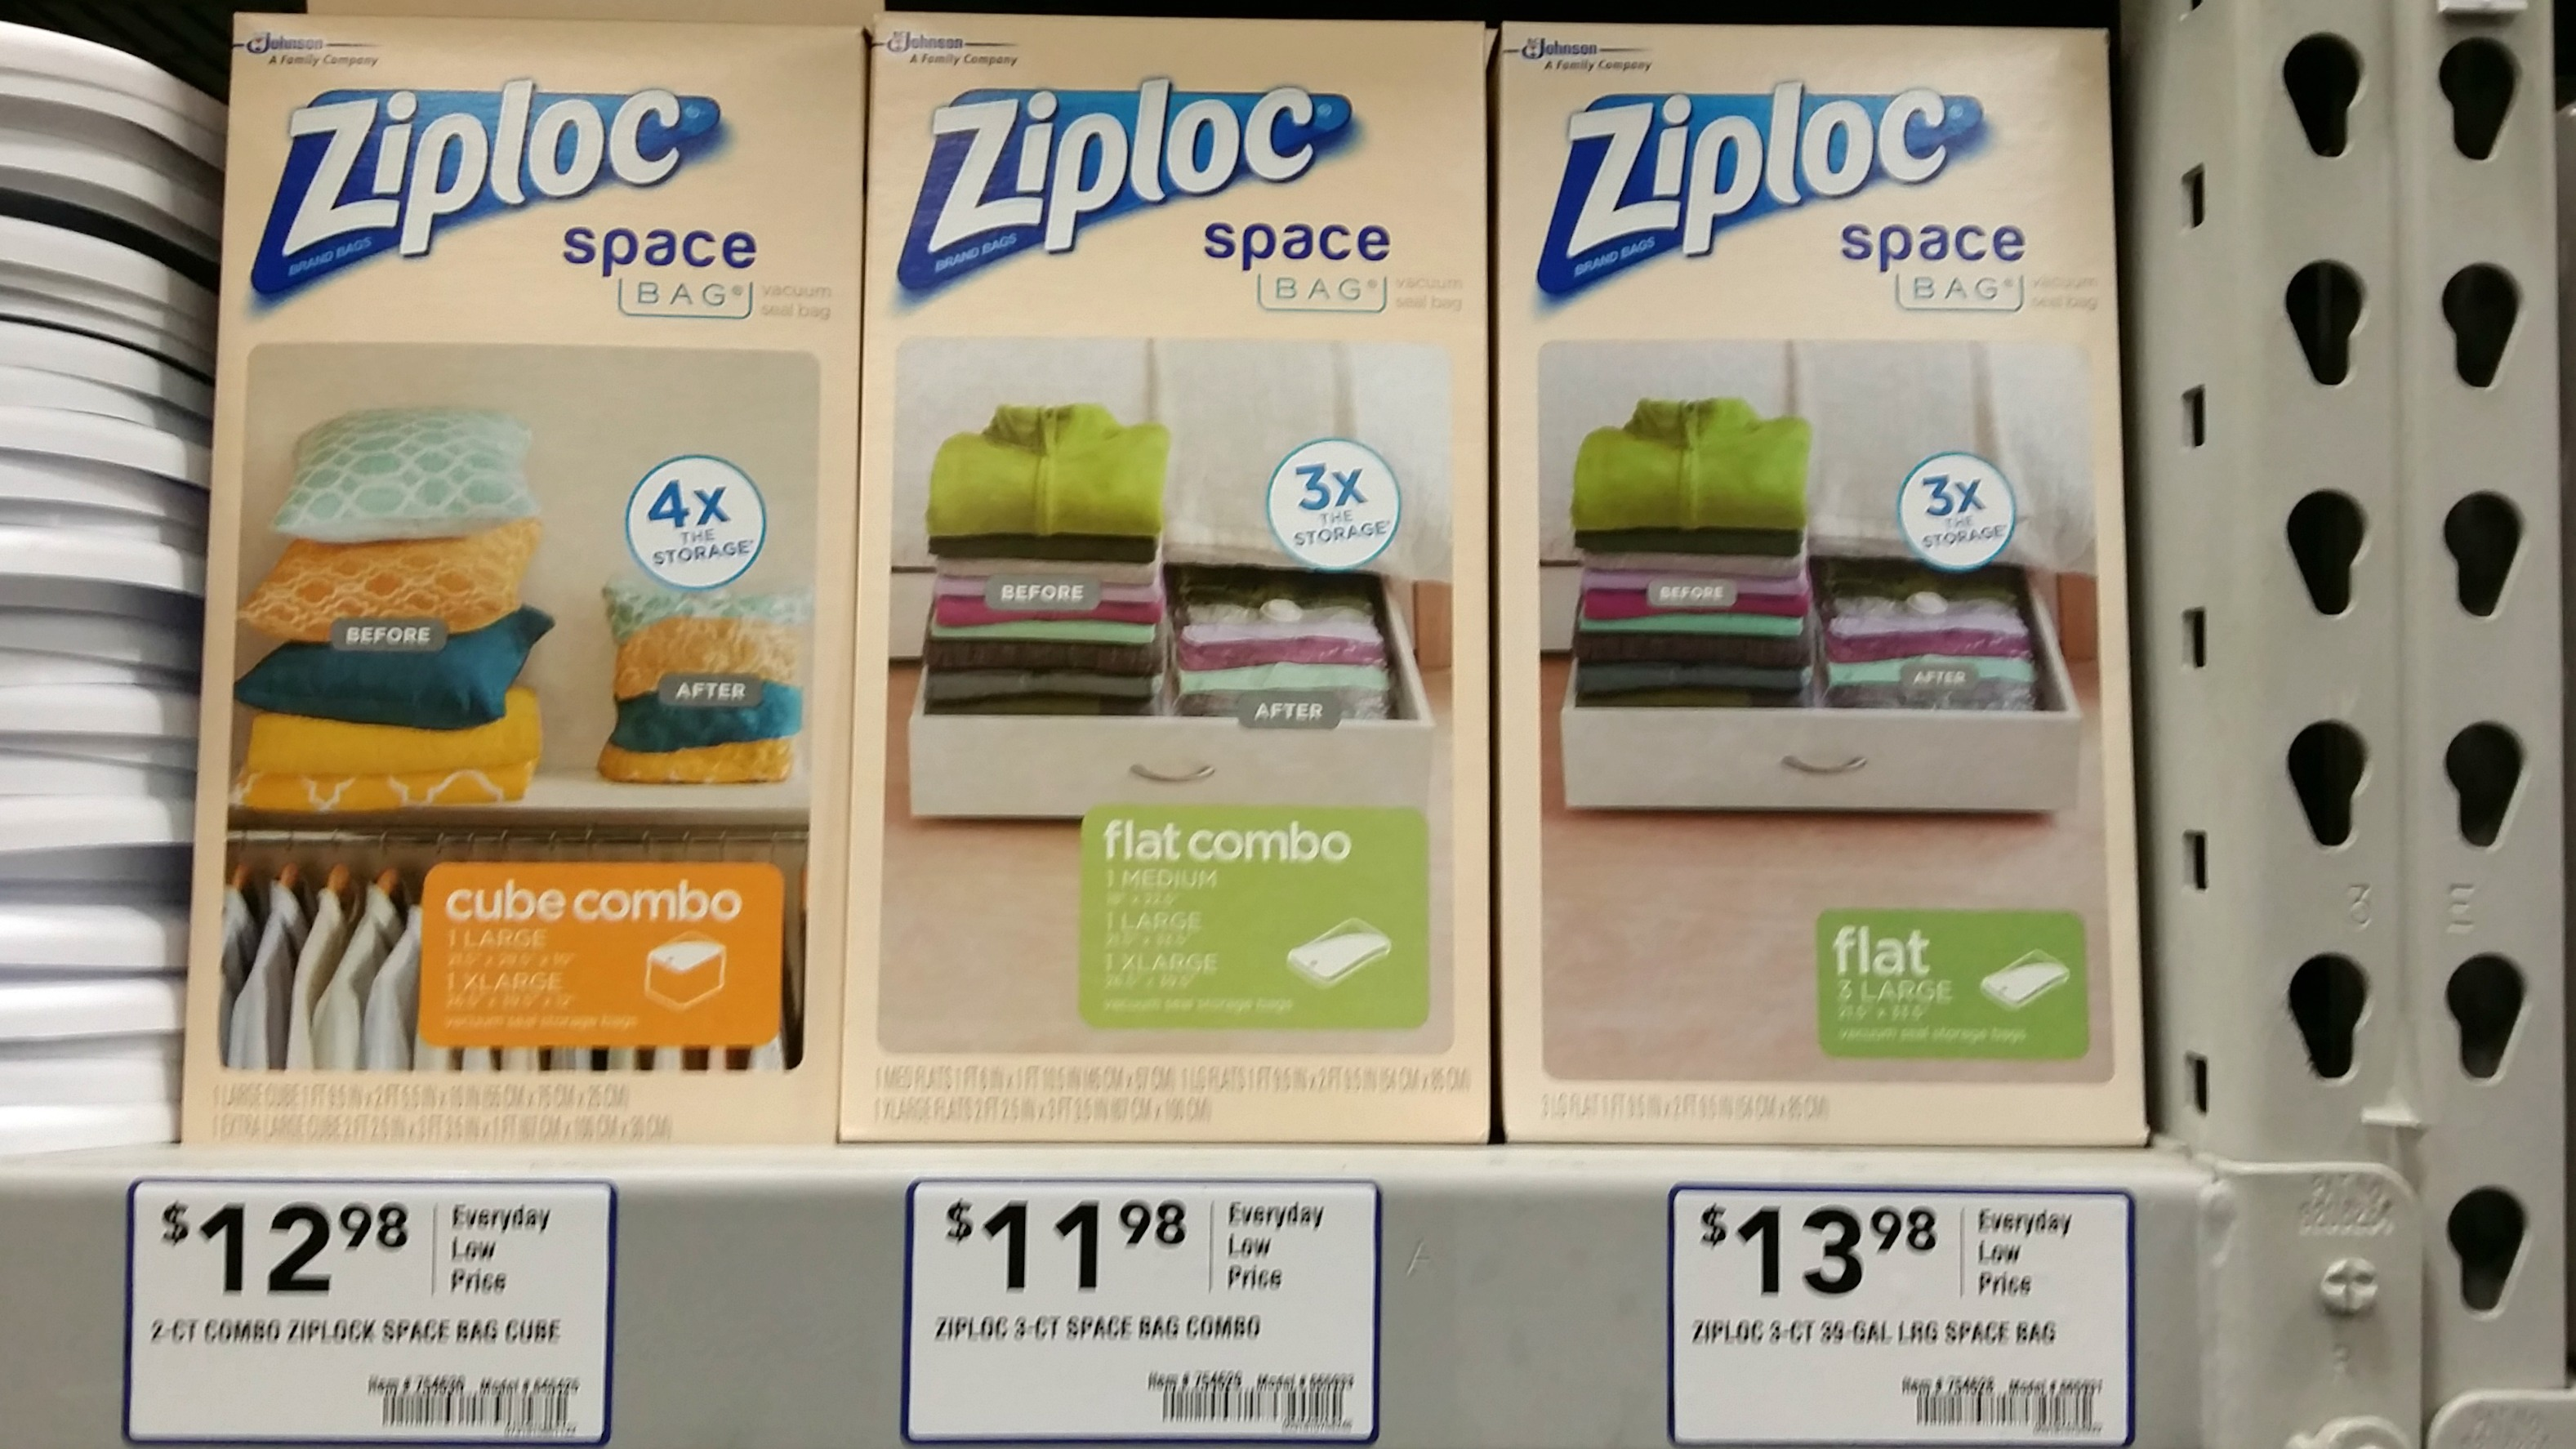 ziploc space bags